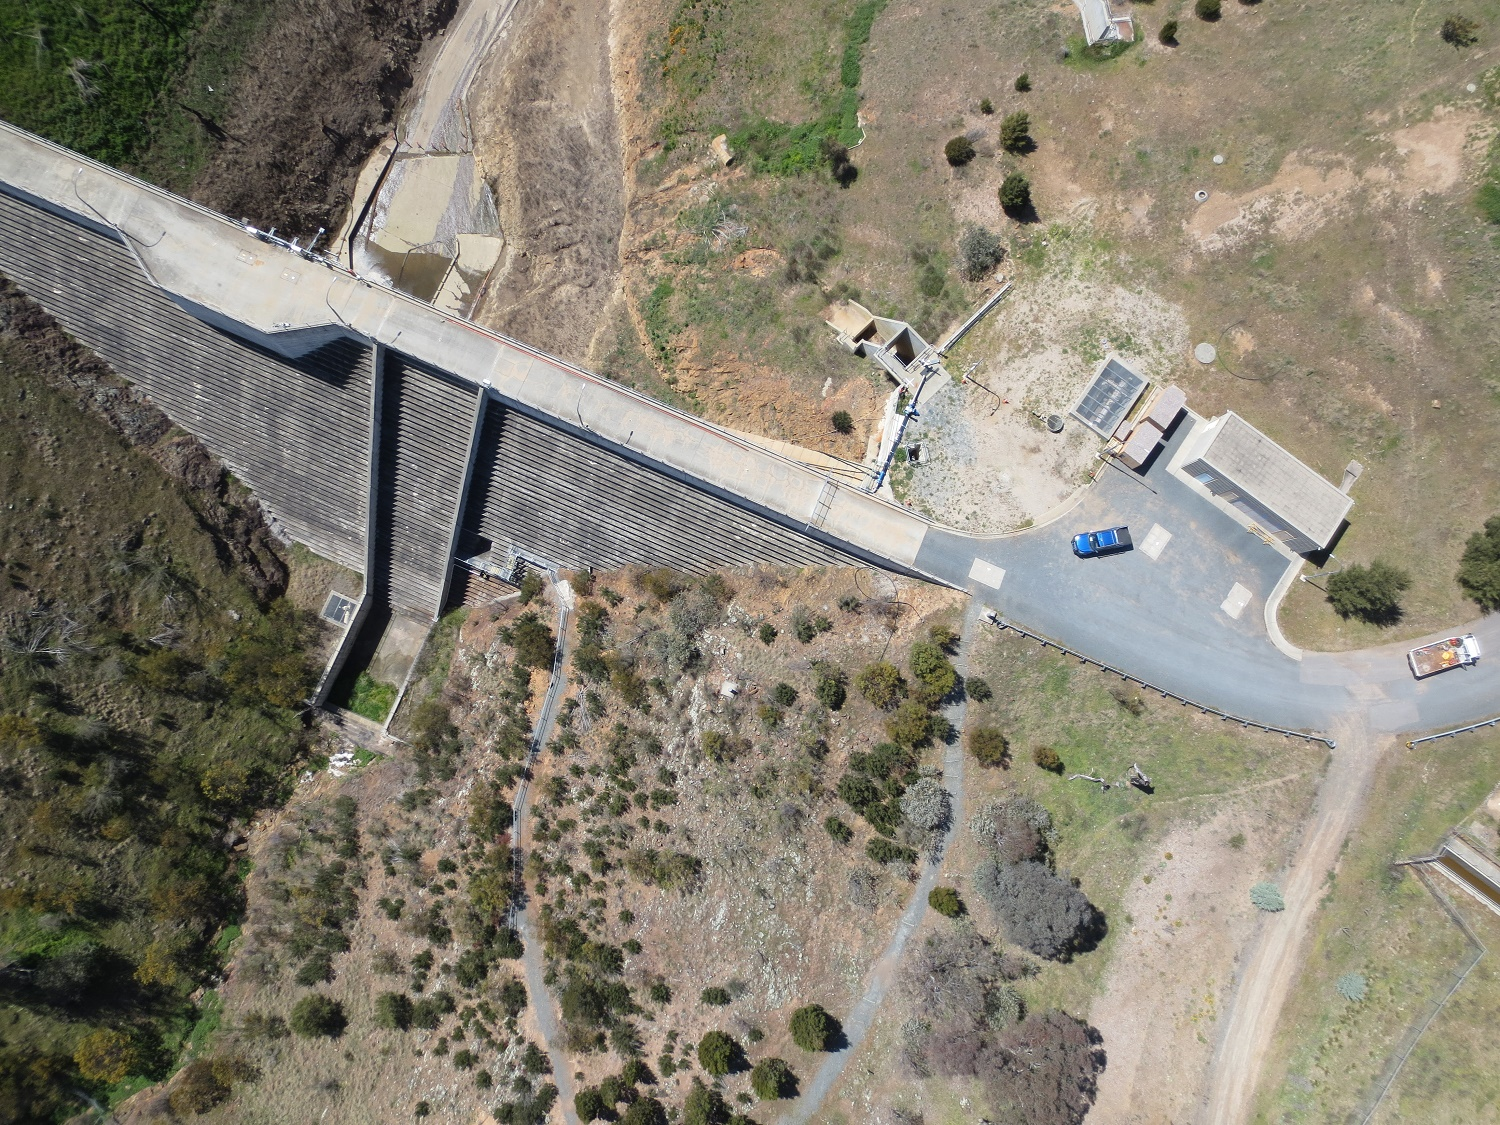 Land Surveying With Drones - Lower Molonglo Dam_Canberra